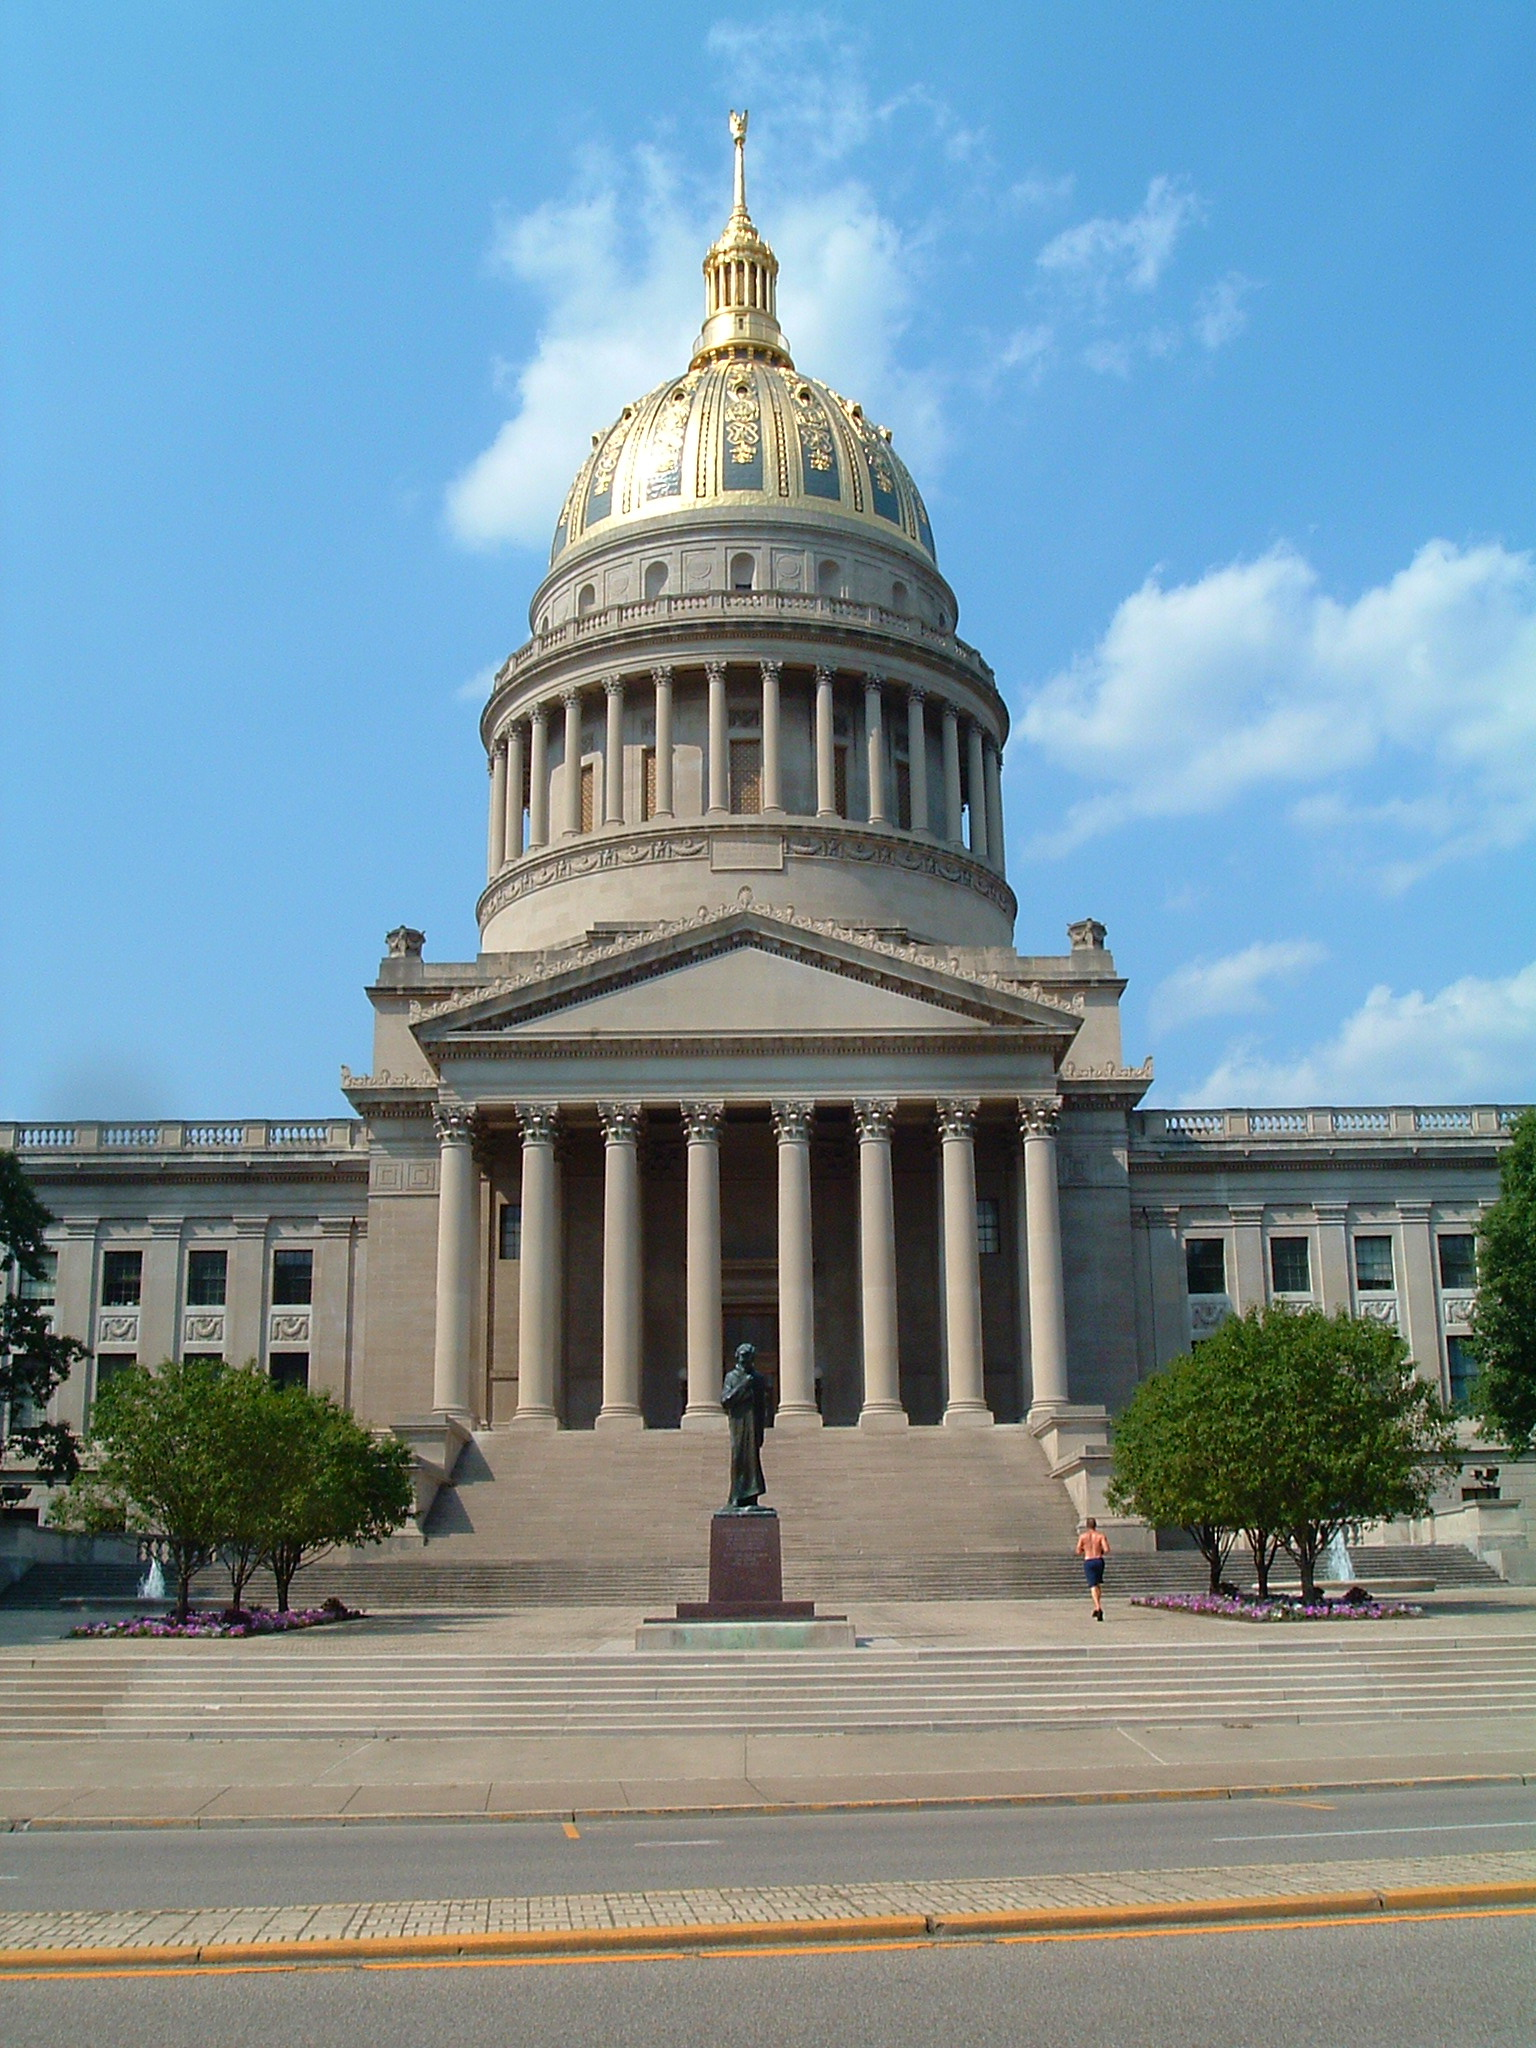 The Church and Social Programs | The Common Vision